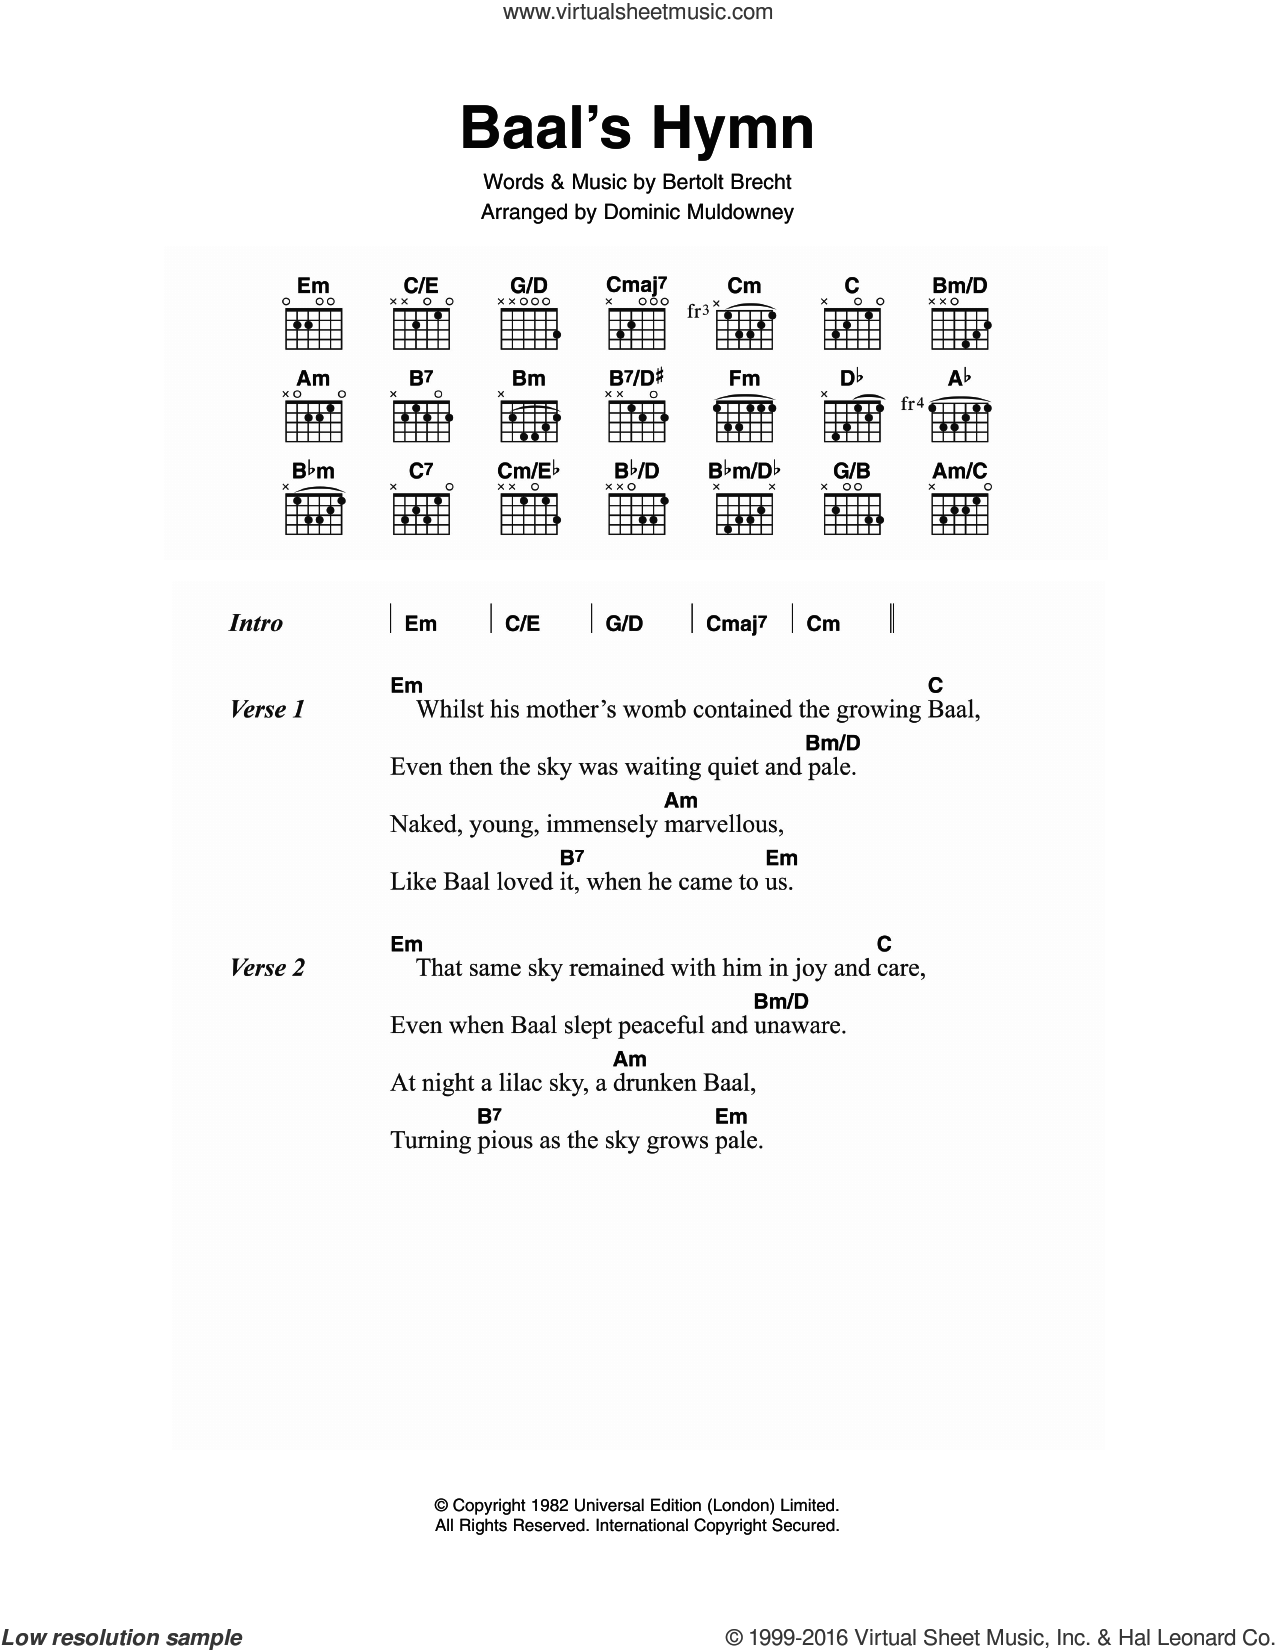 Baal's Hymn sheet music for guitar (chords) by David Bowie and Bertolt Brecht, intermediate